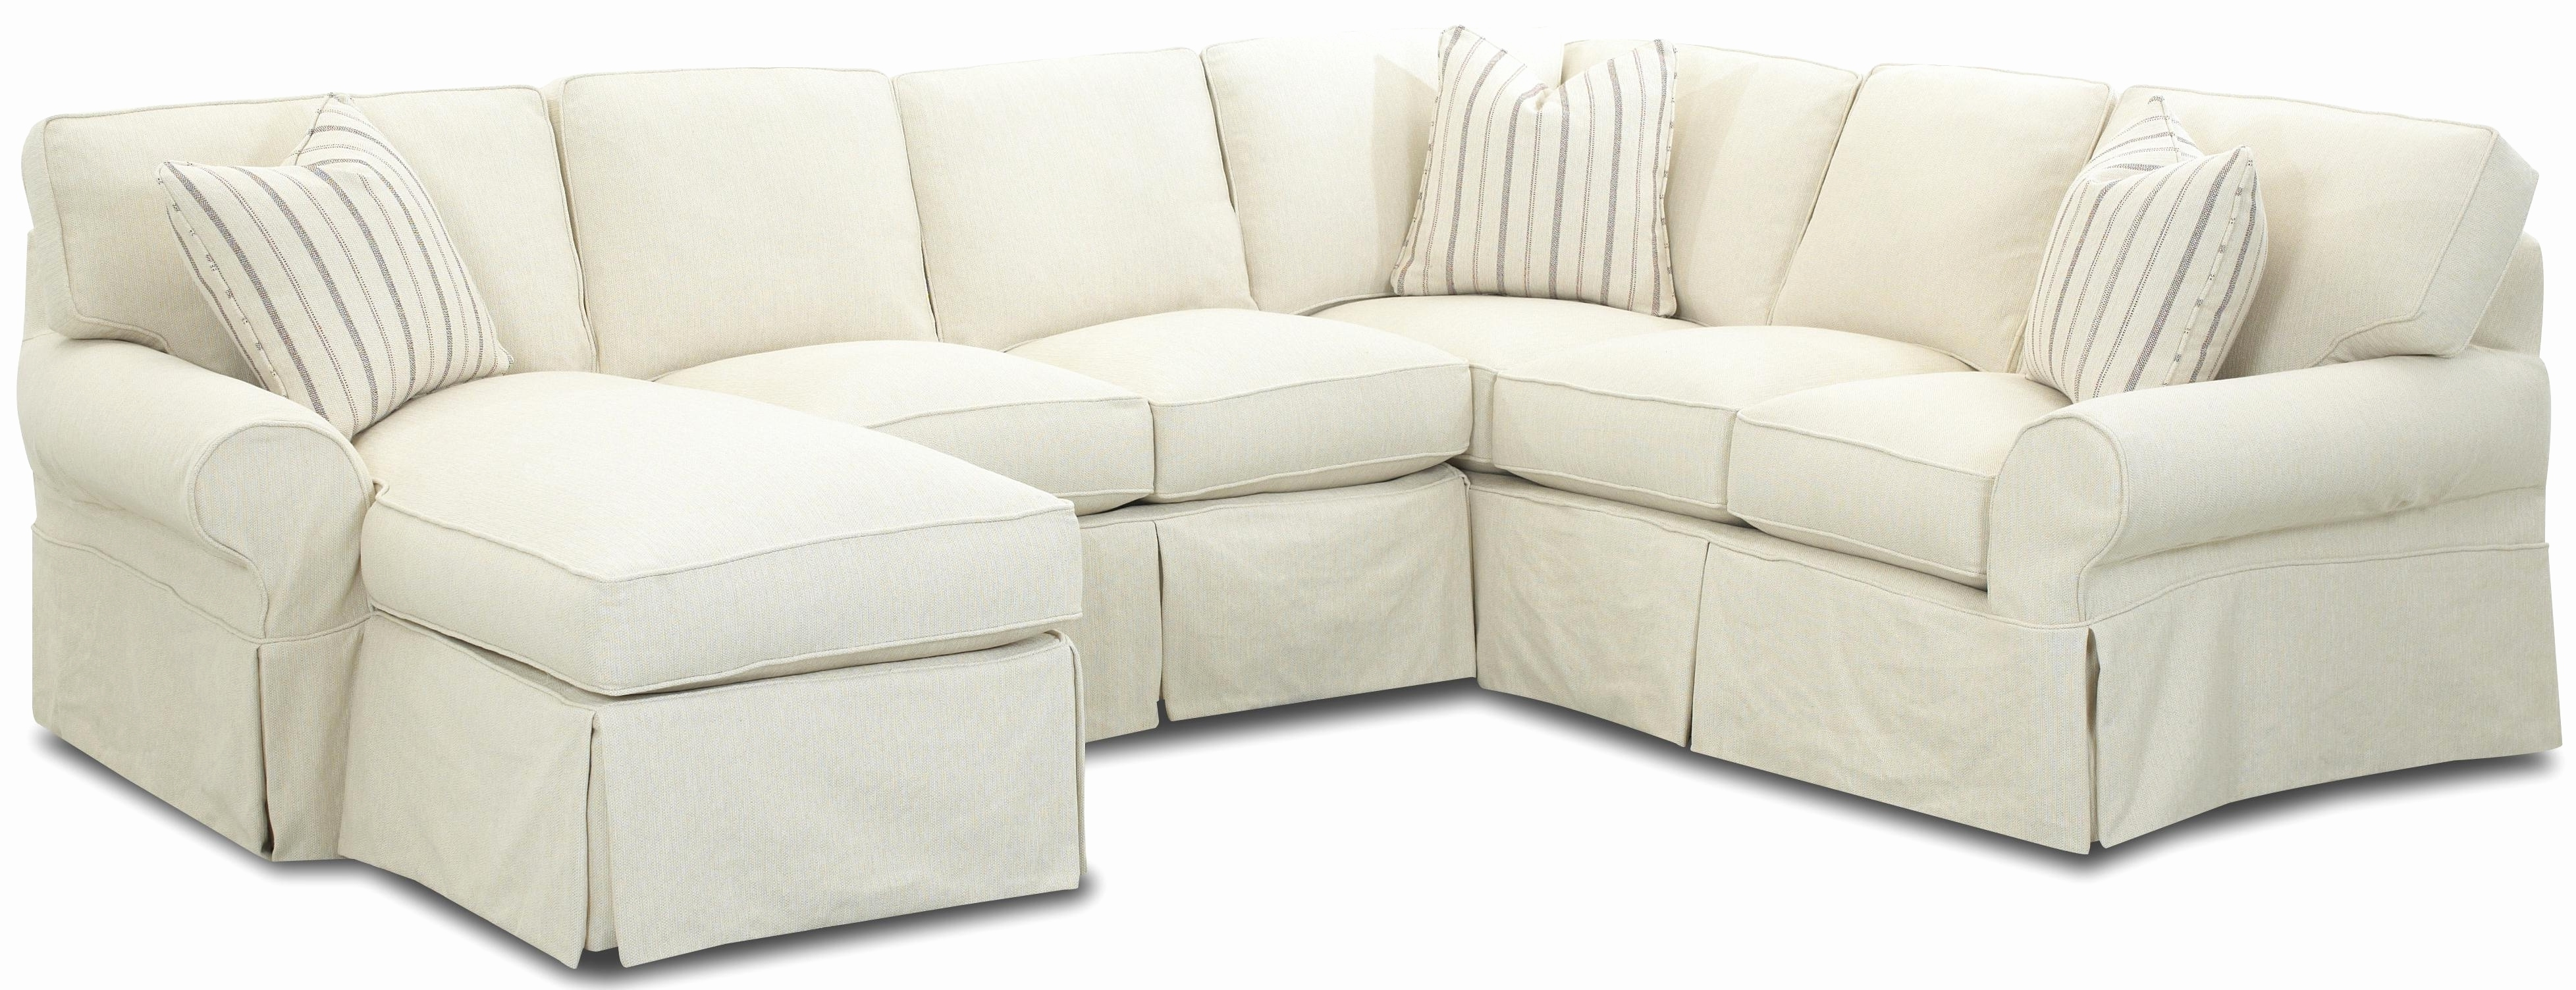 overstock sofa stella 2 drawer mirrored table explore photos of sectional sofas showing 11 20 most recently released inside unique 7 piece leather 2018 couches